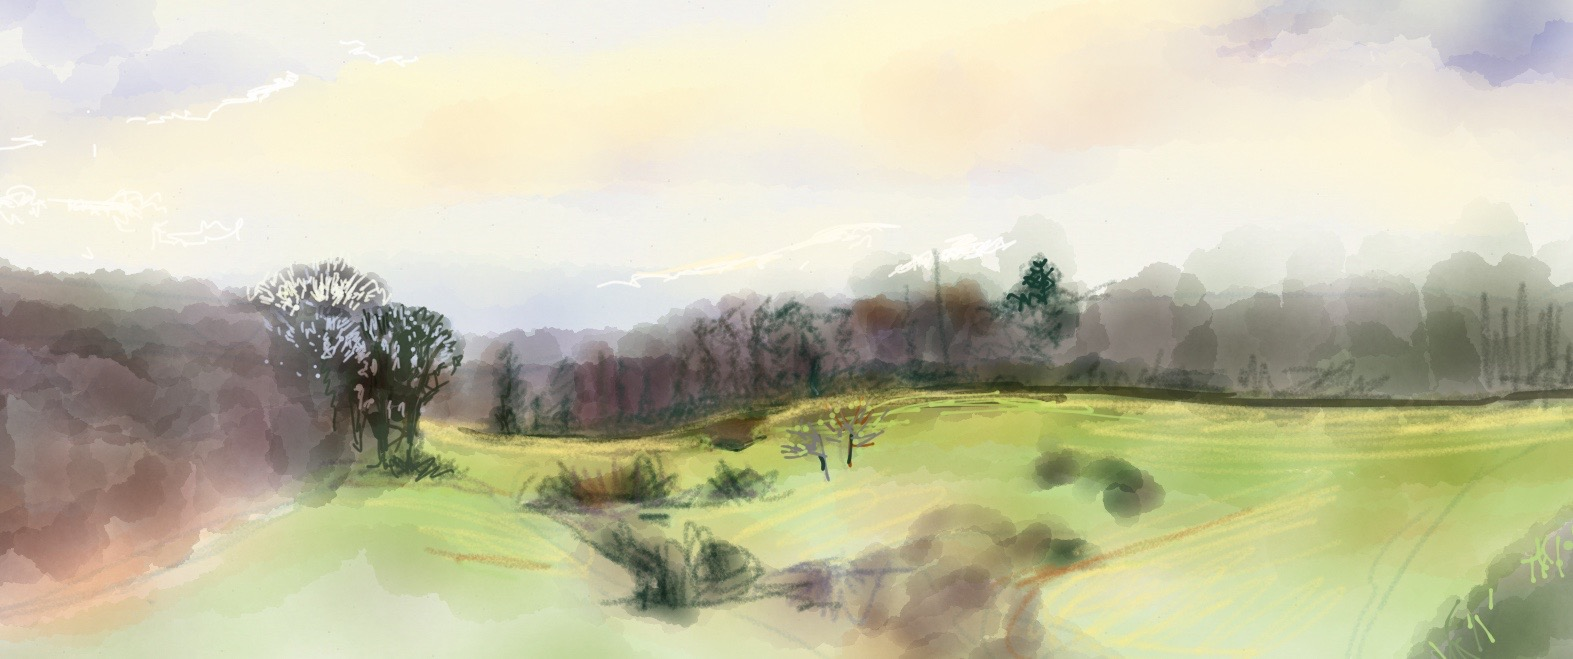 View from my Window, iPad sketch